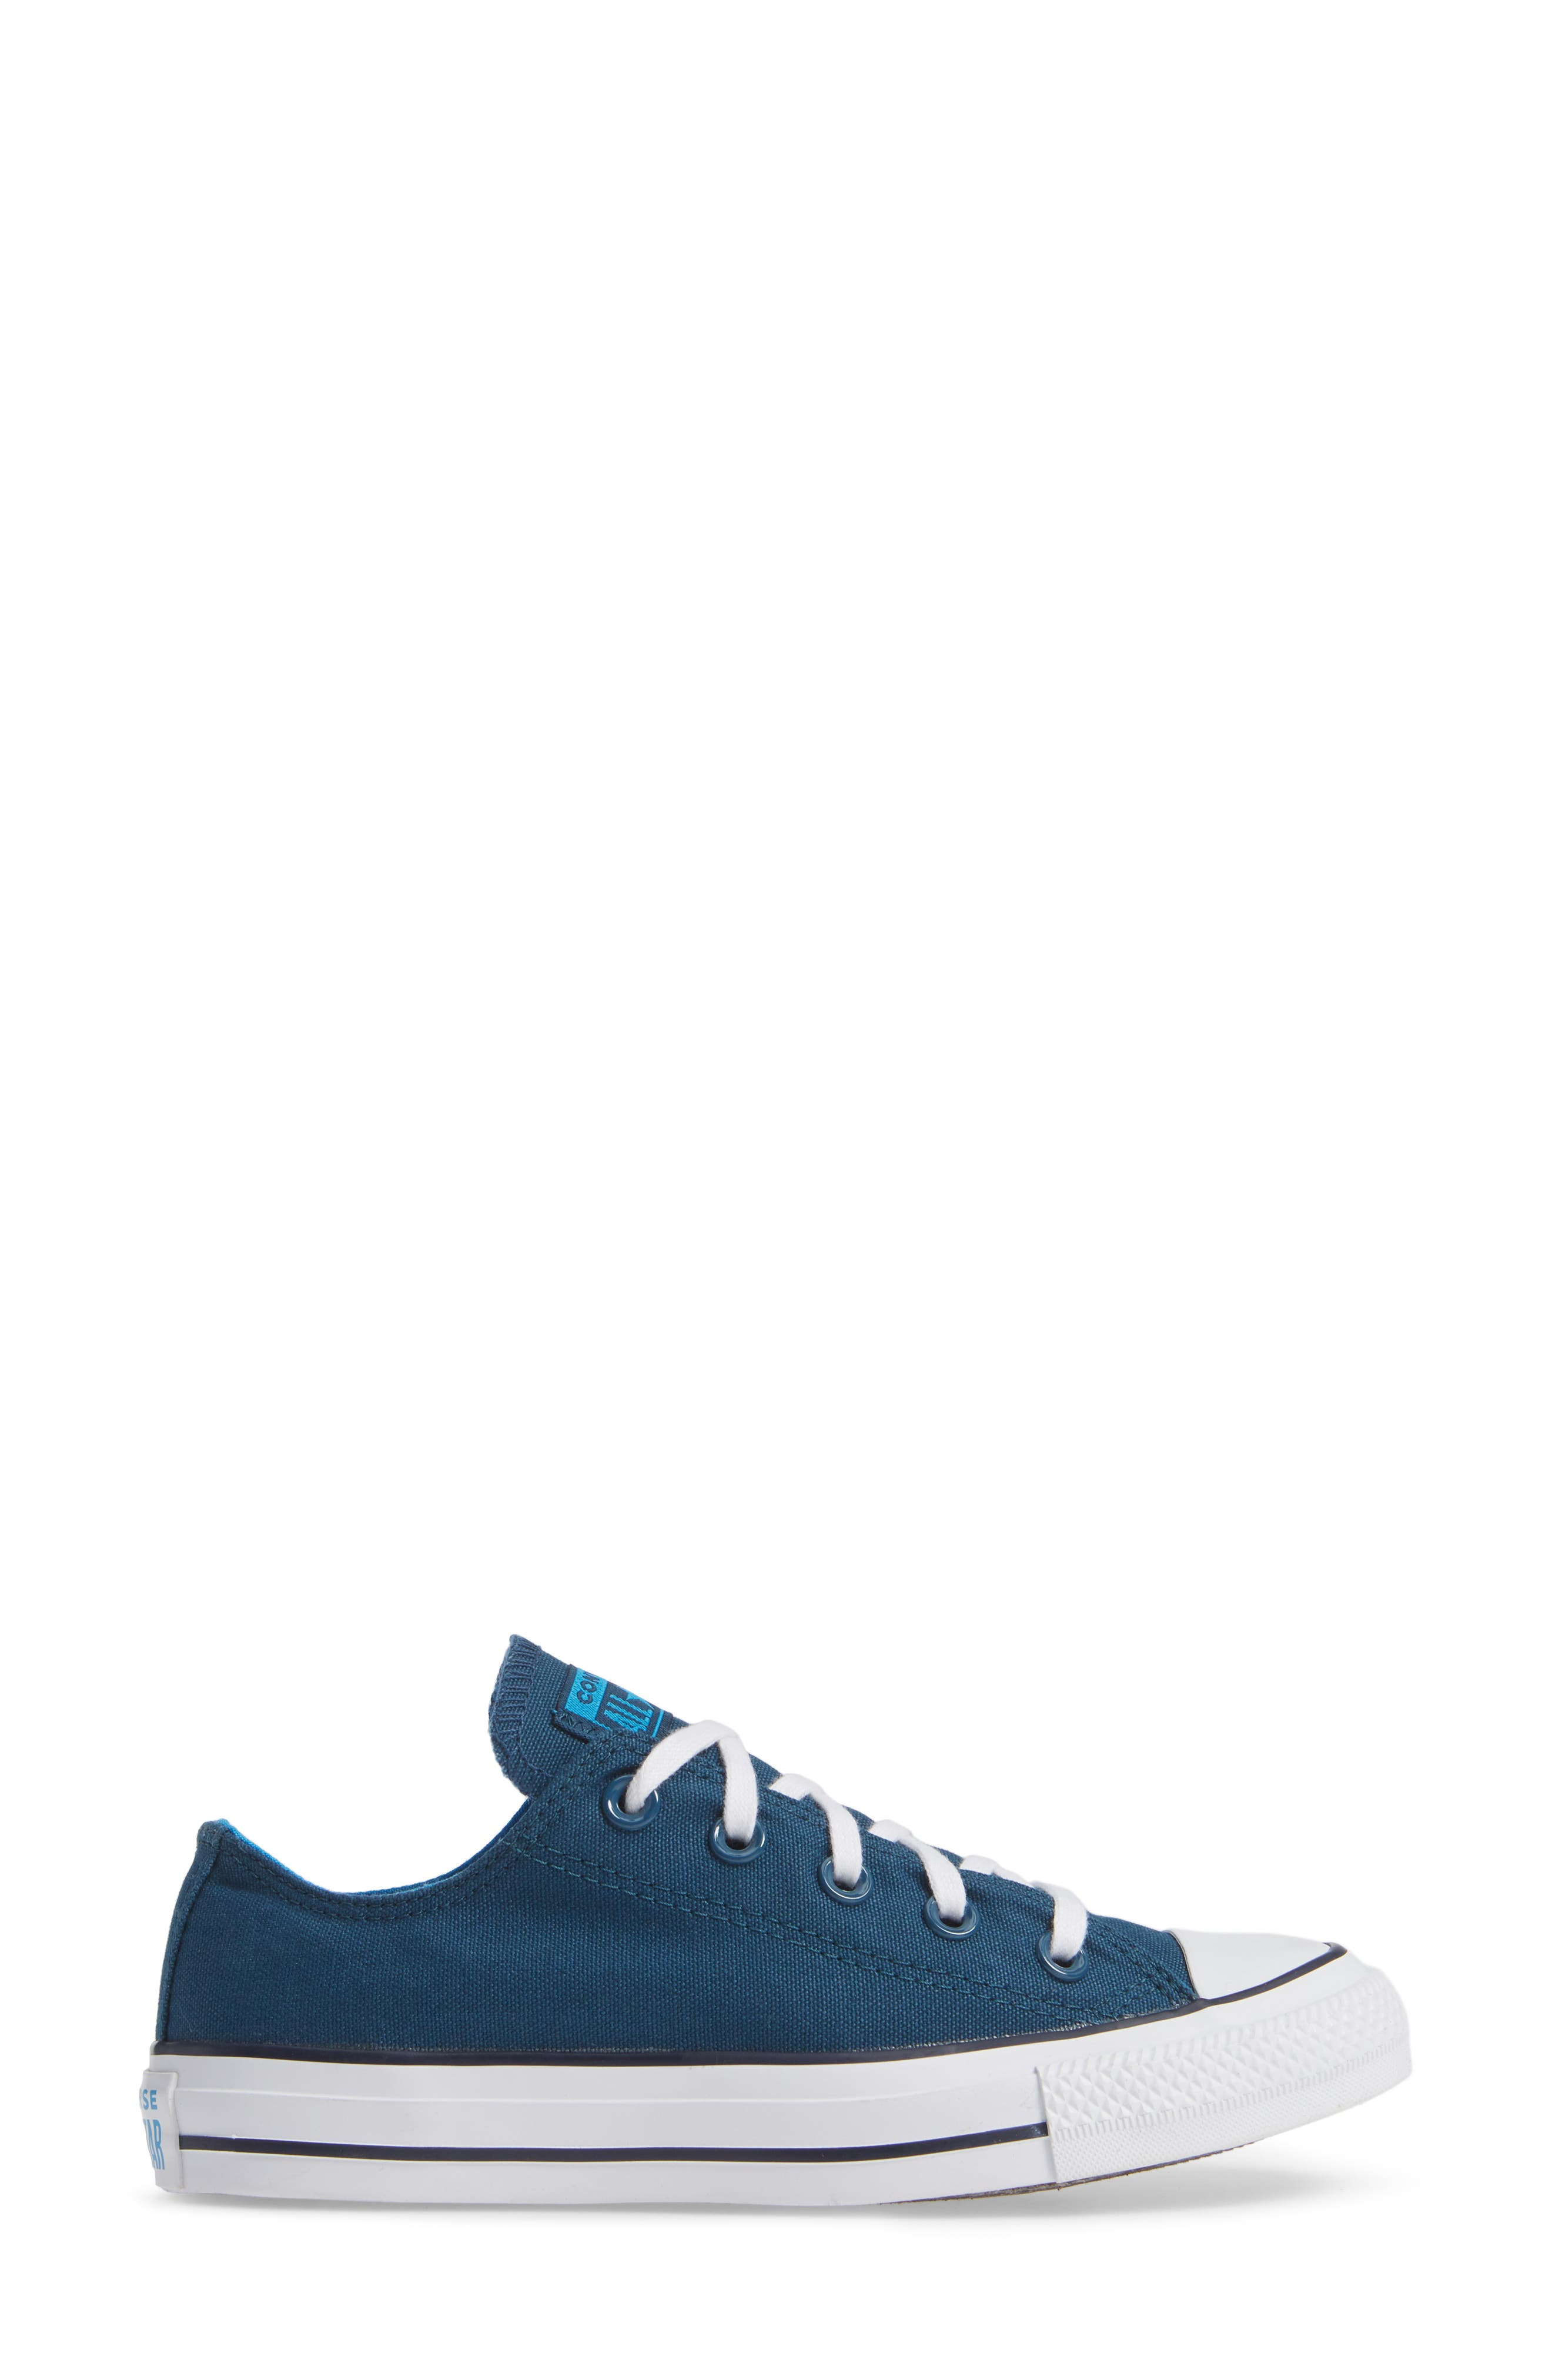 Chuck Taylor<sup>®</sup> All Star<sup>®</sup> Seasonal Ox Low Top Sneaker,                             Alternate thumbnail 3, color,                             BLUE FIR